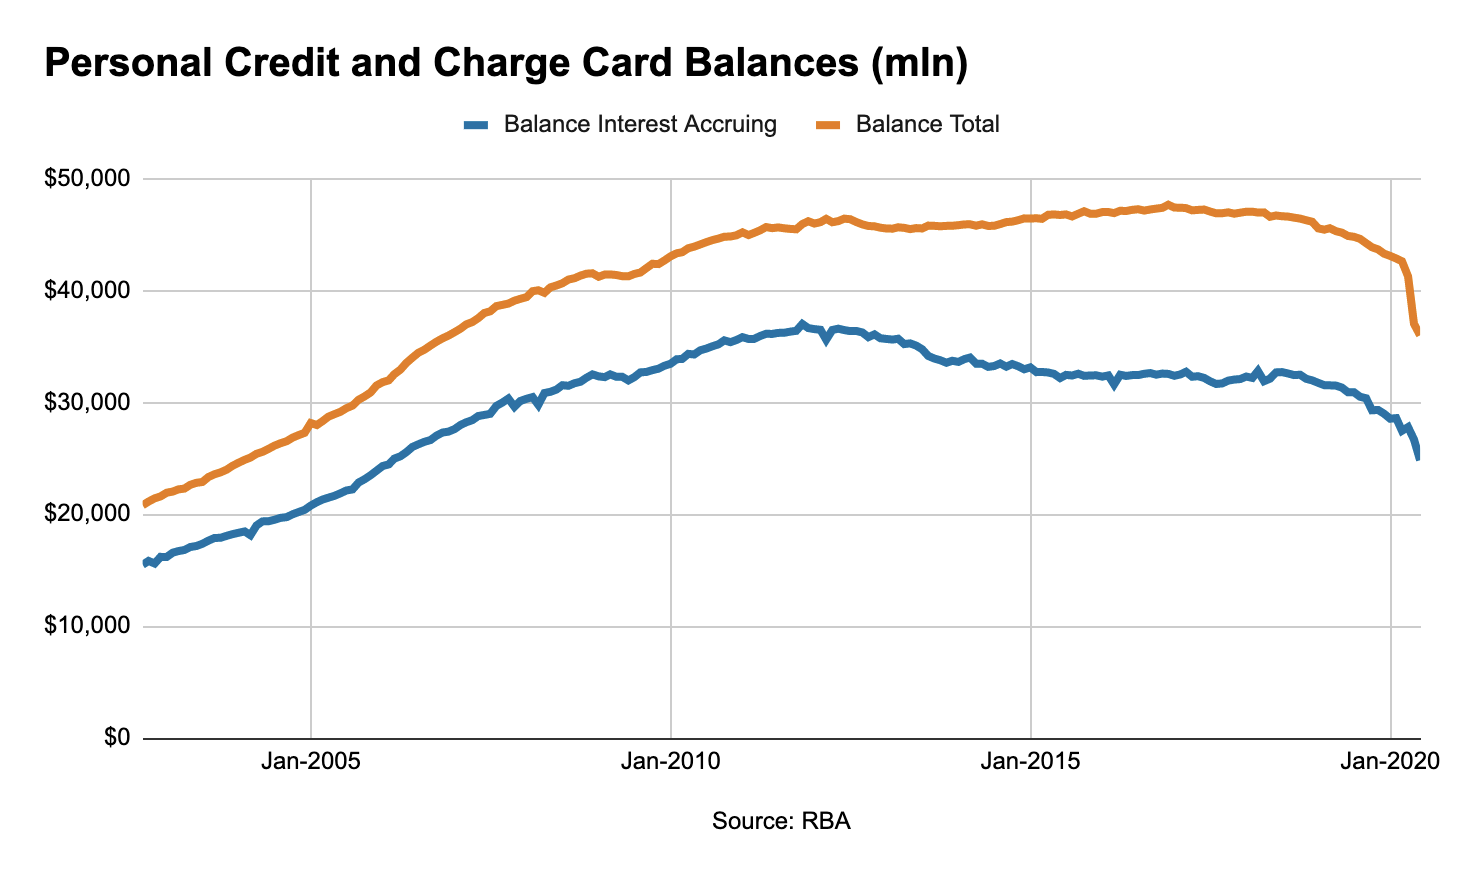 Graph showing trend in personal credit and charge card balances